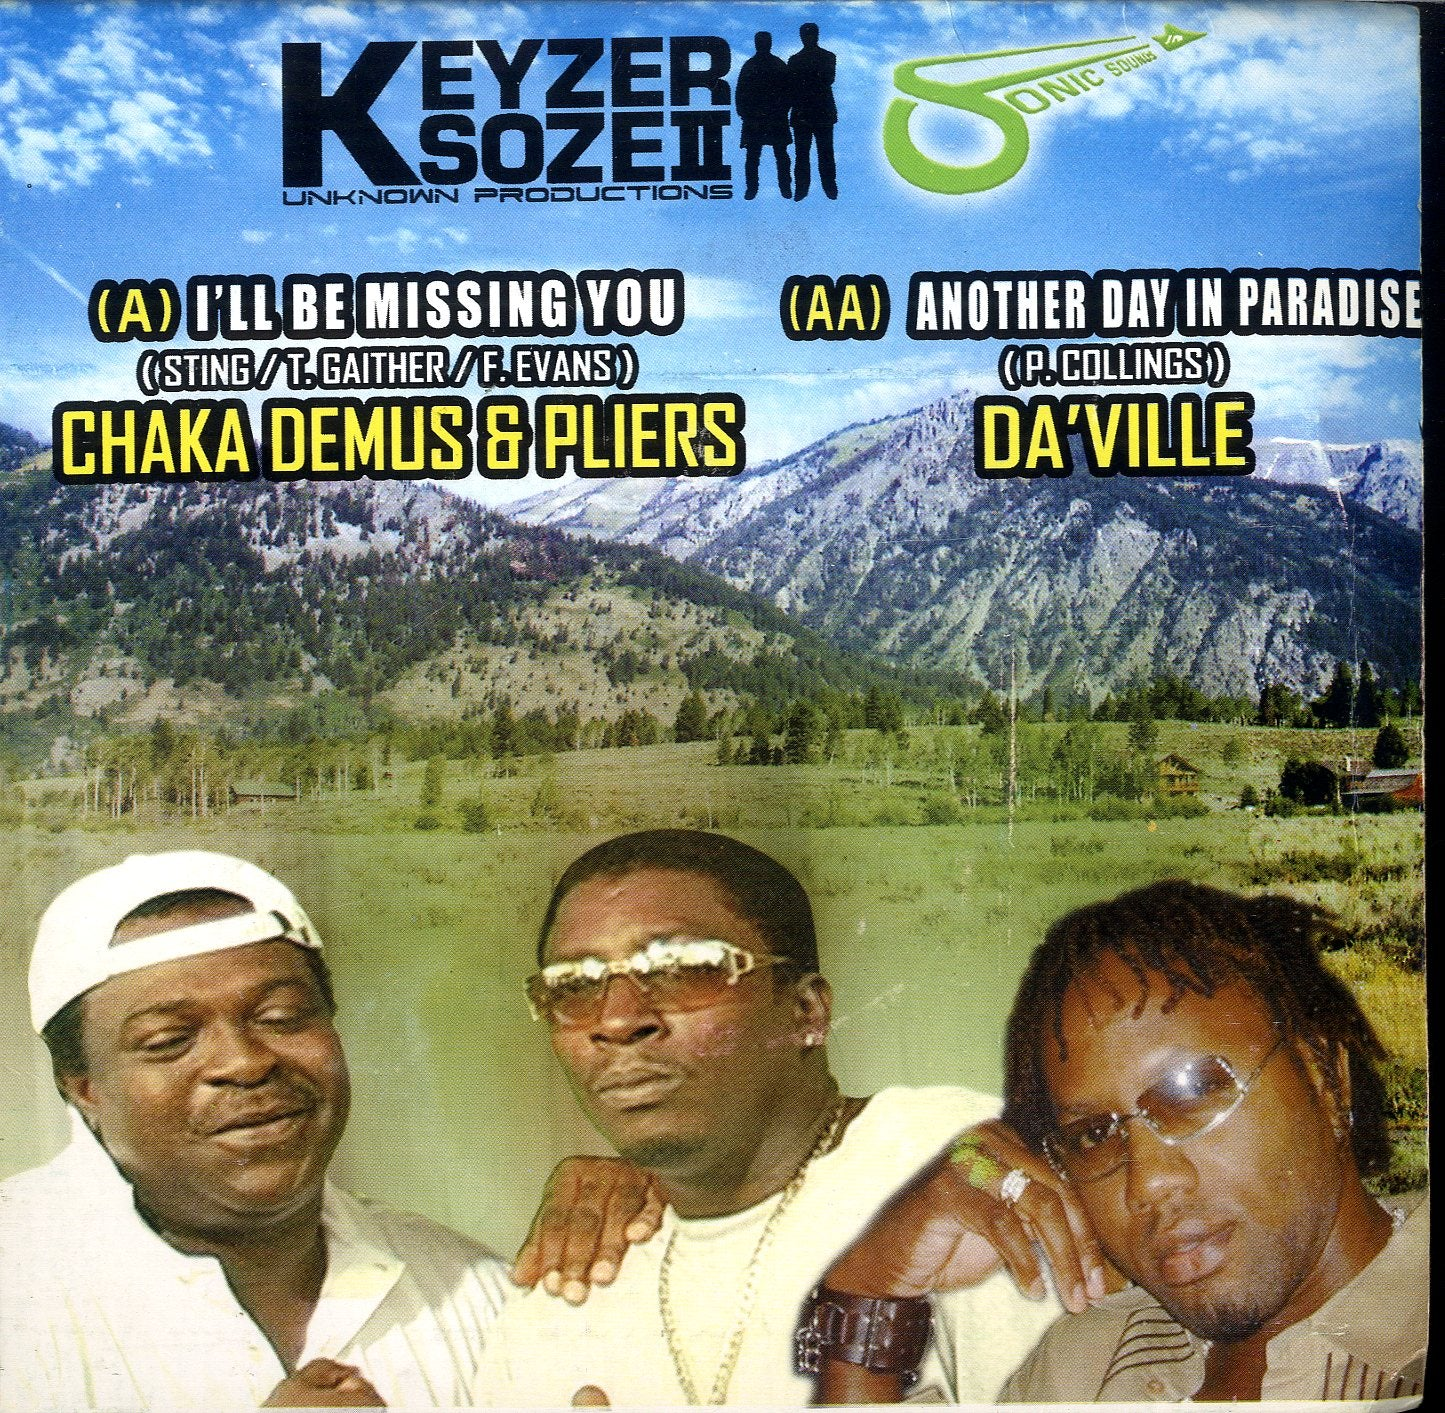 CHAKA DEMUS & PLIERS / DA'VILLE [I'll Be Missing You / Another Day In Paradise]